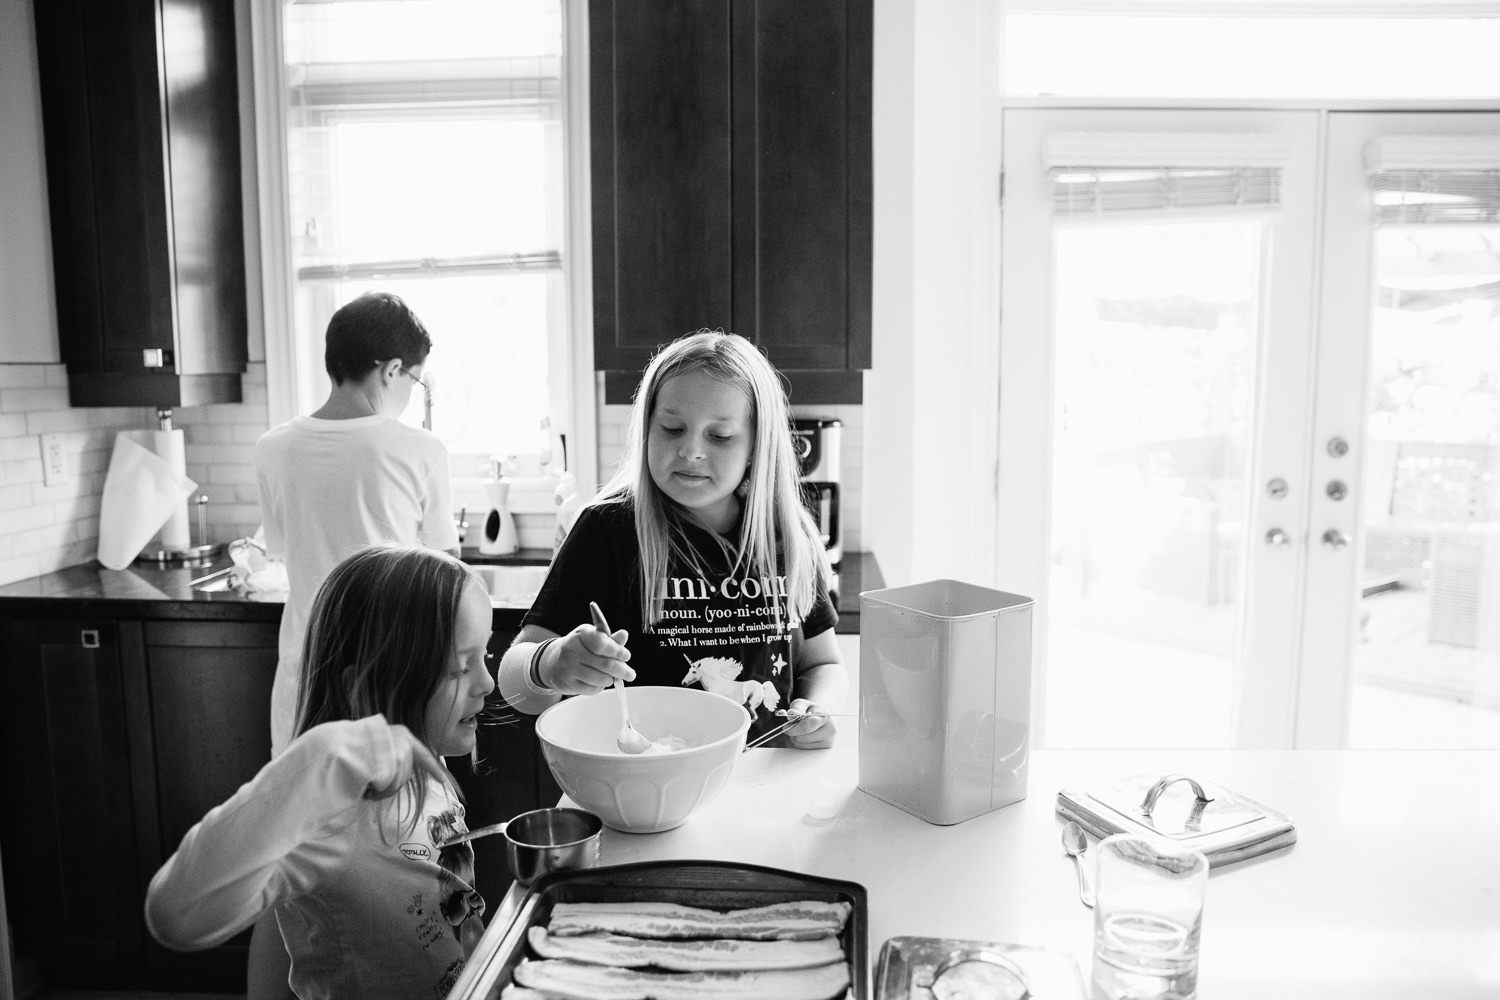 8 and 10 year old sisters standing at kitchen island mixing pancake batter for family brunch, 13 year old brother at sink behind them -Stouffville Lifestyle Photography